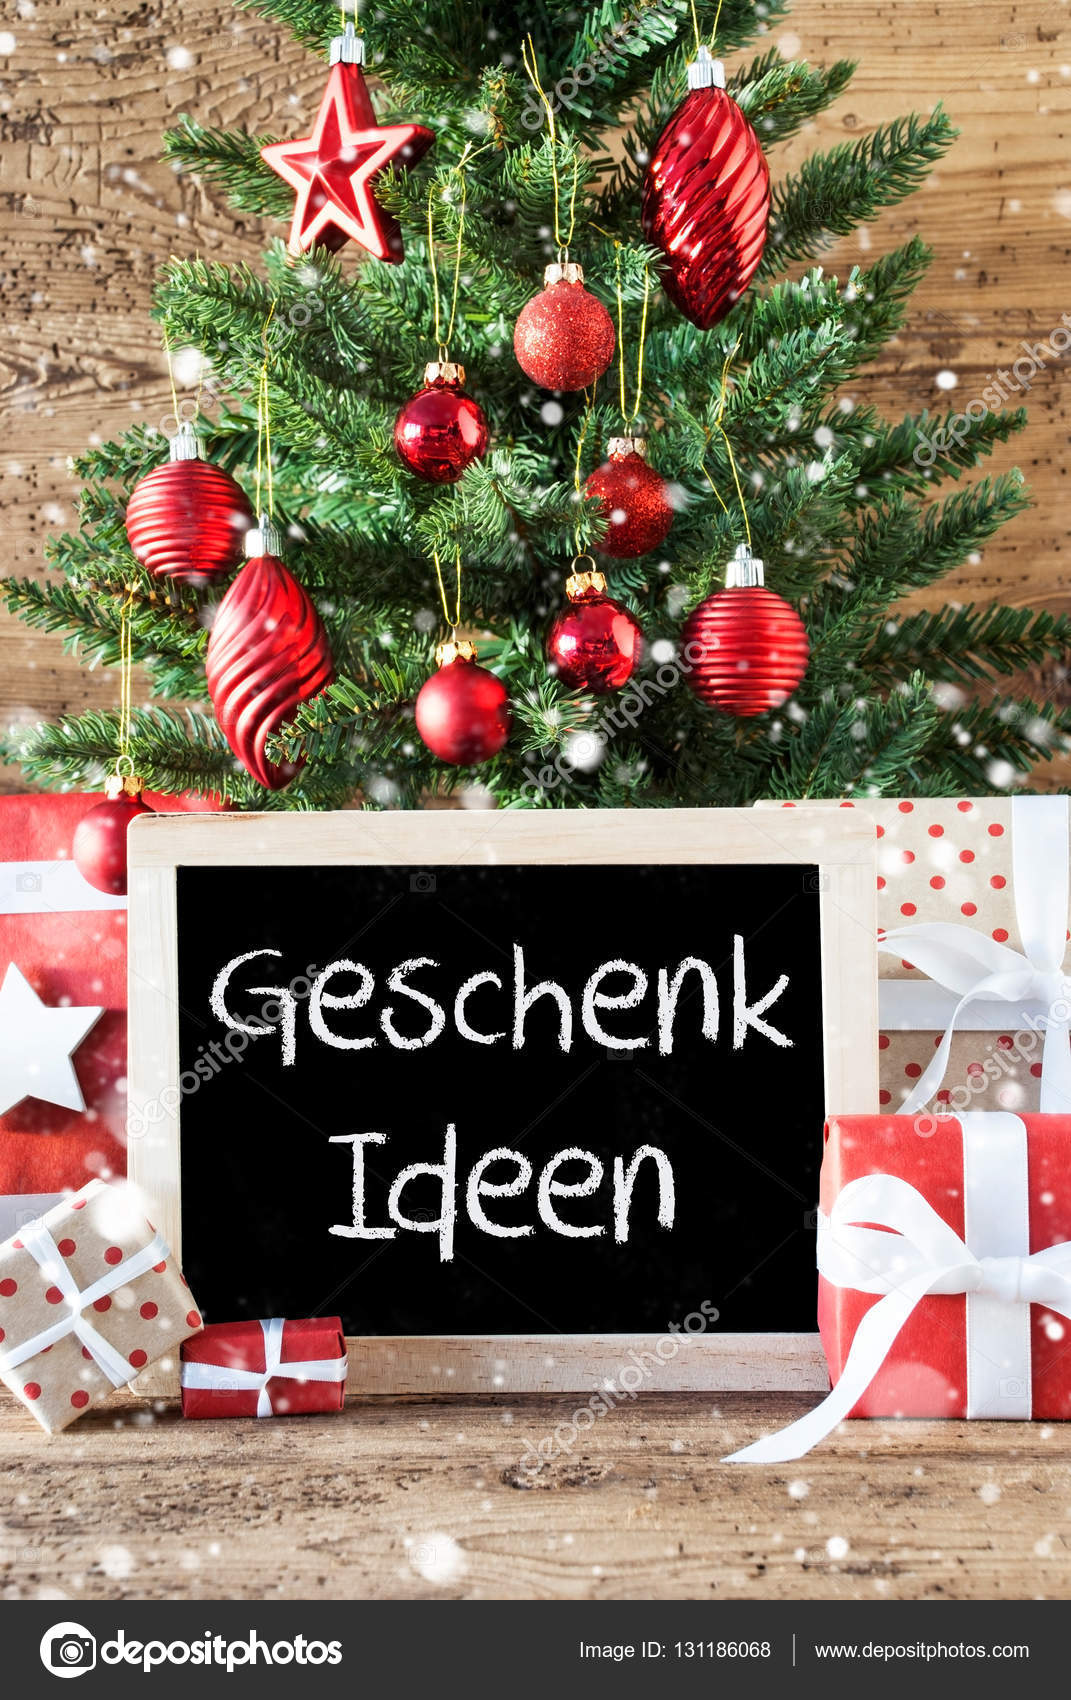 Colorful Christmas Tree Ideas.Colorful Christmas Tree Snowflakes Geschenk Ideen Means